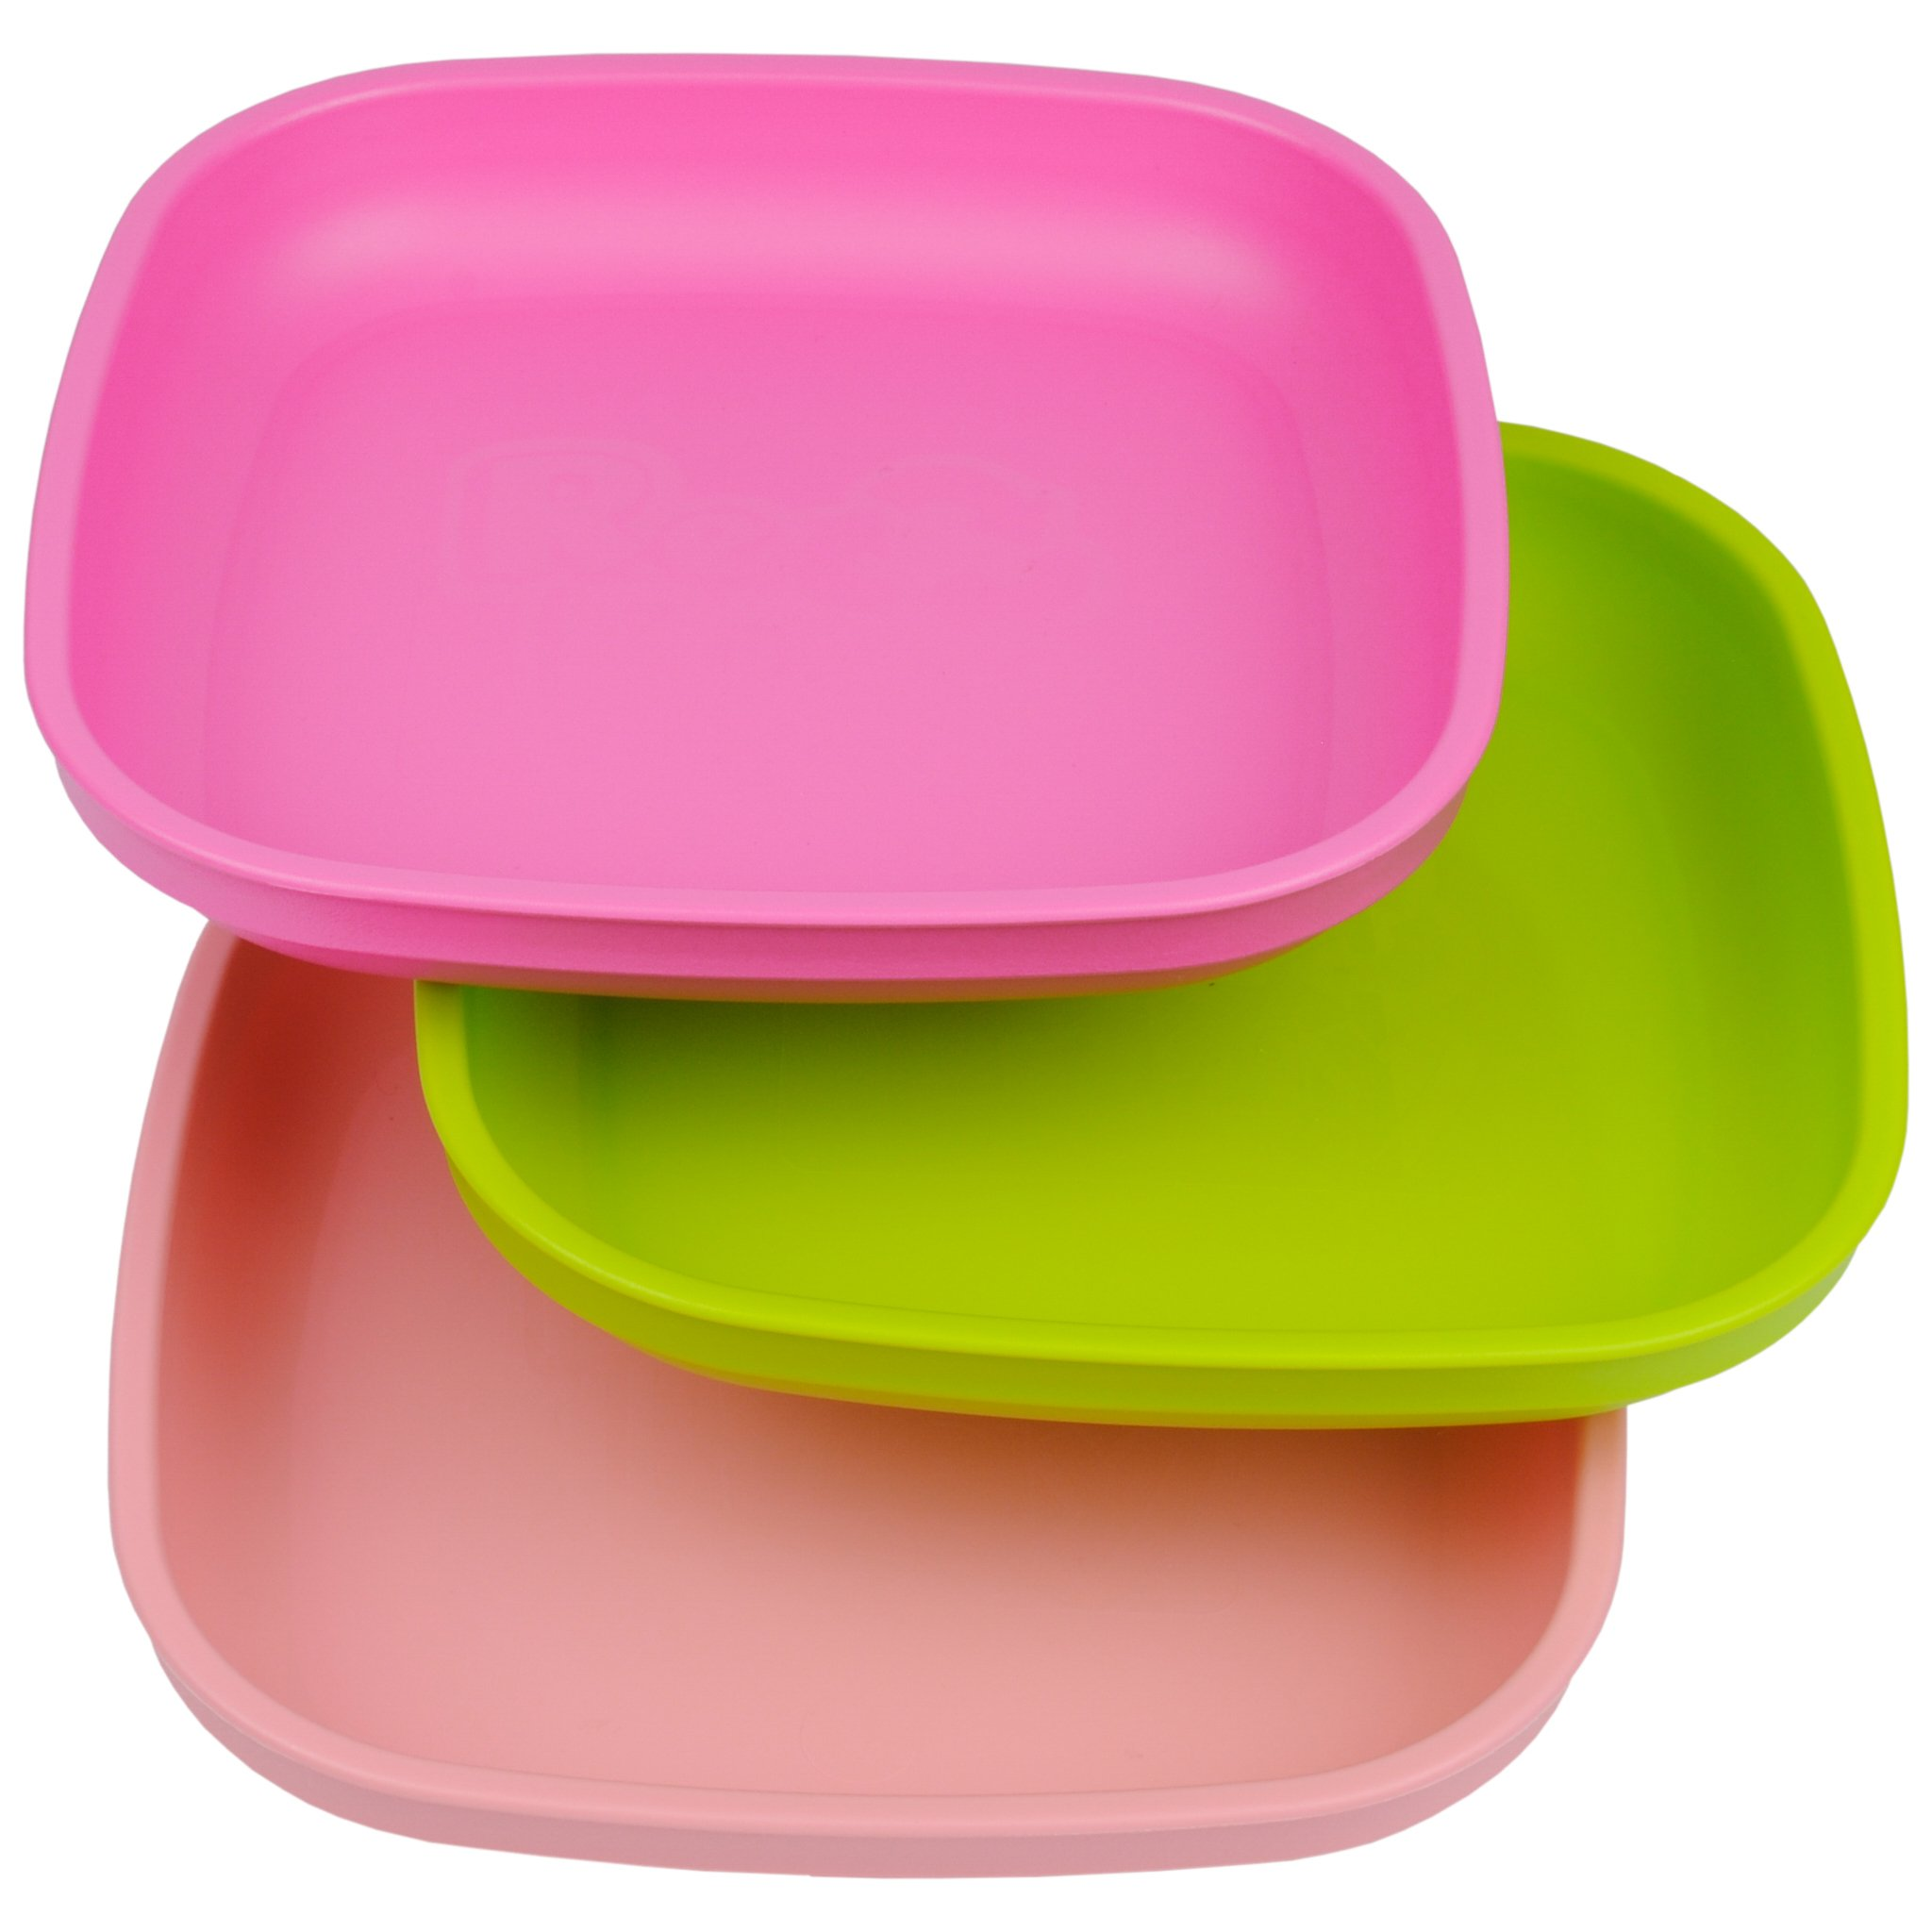 Re-Play Made in USA 3pk Plates with Deep Sides for Easy Baby, Toddler, Child Feeding - Bright Pink, Lime Green, Blush (Tulip)